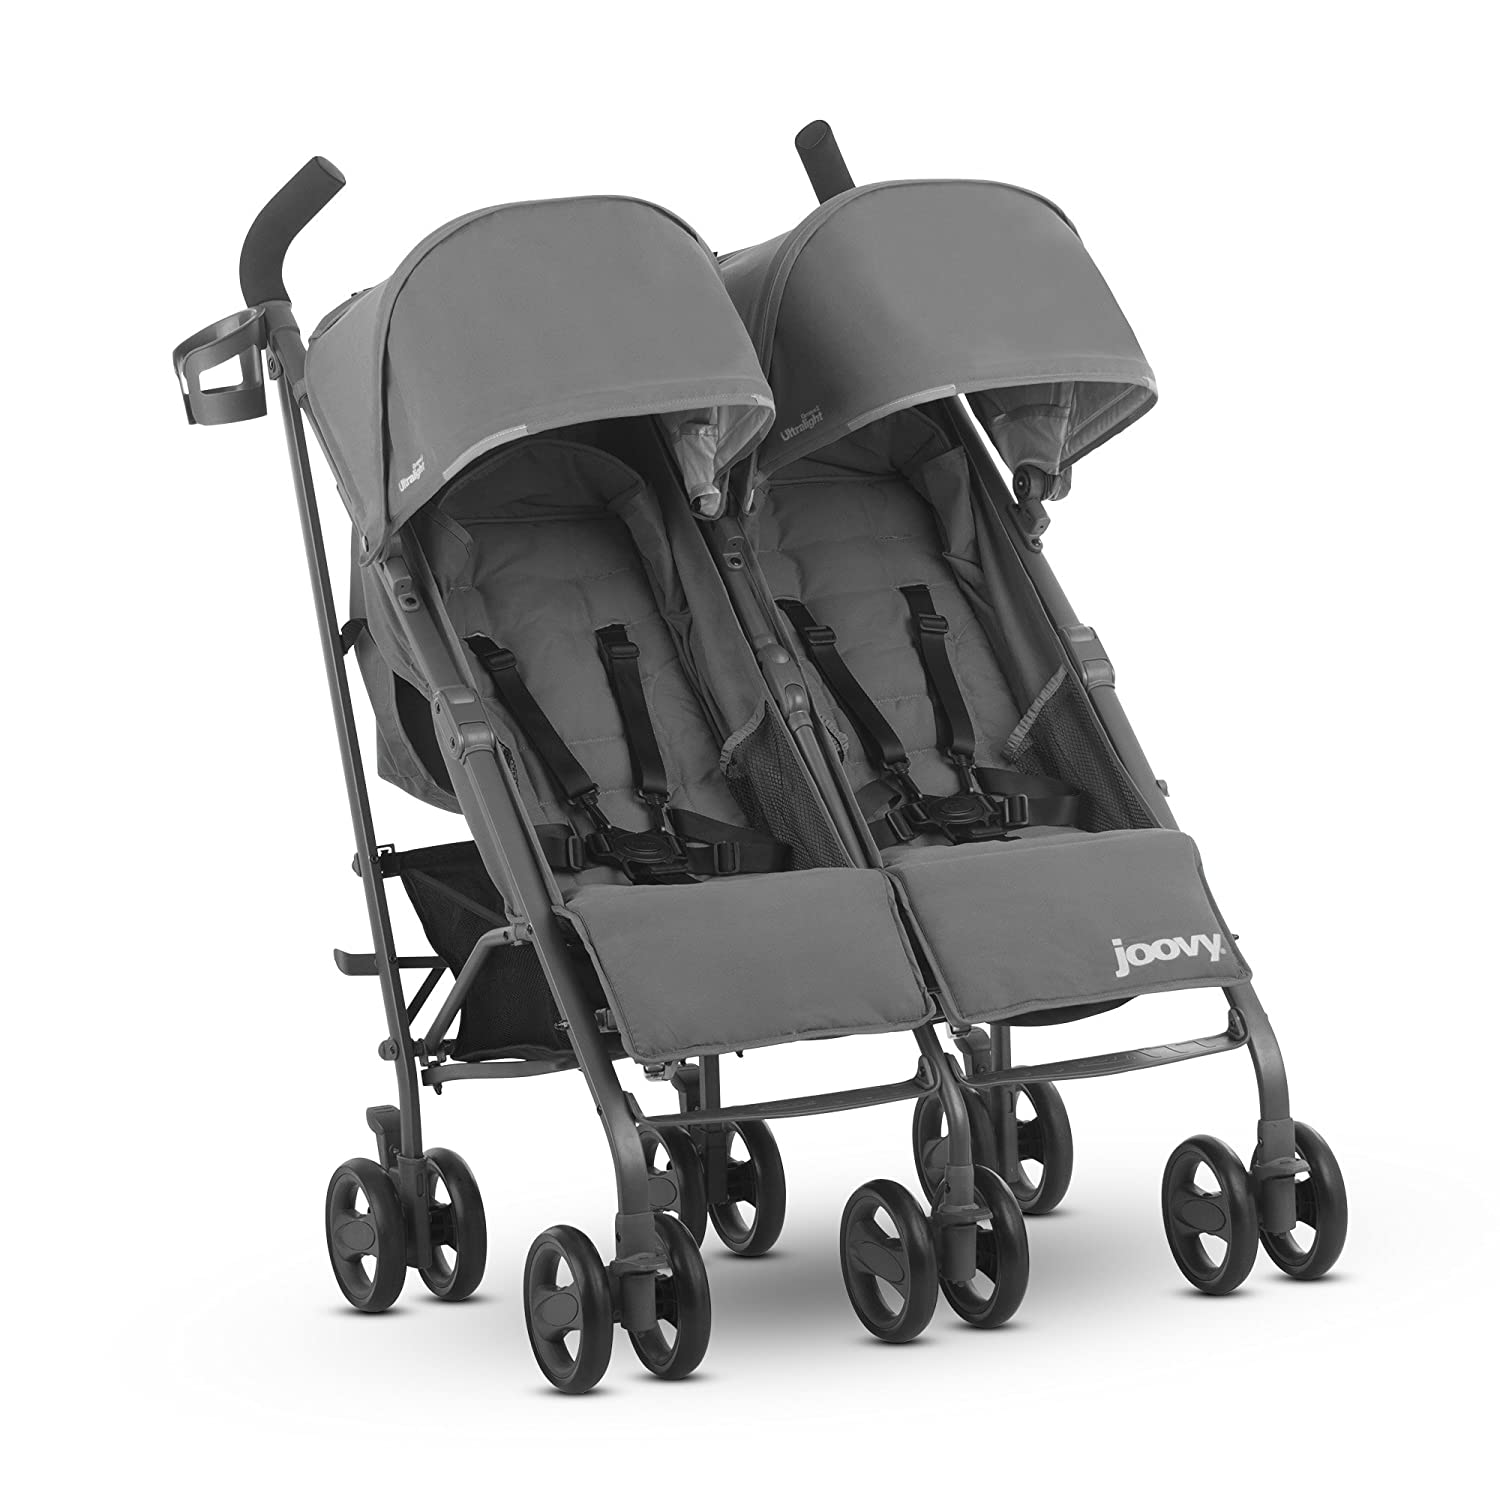 JOOVY Twin Groove Ultralight Umbrella Stroller, Charcoal 8089